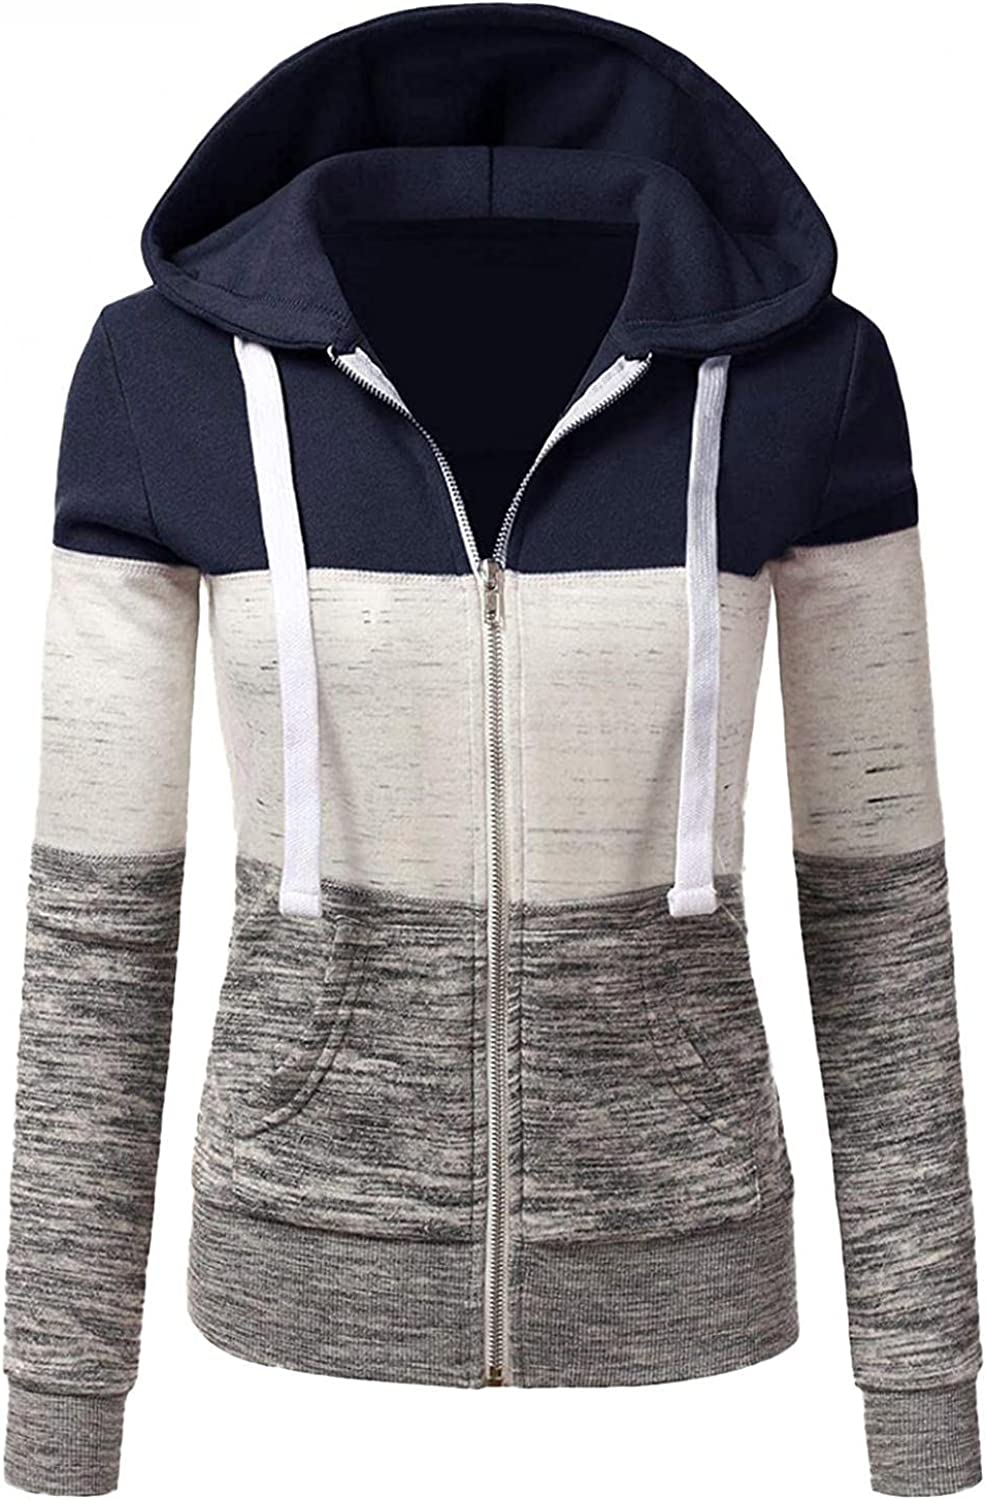 Nulairt Hoodies for Women,Womens Y2K Fashion Hooded Sweatshirt Drawstring Lightweight Zip Up Jackets with Pockets